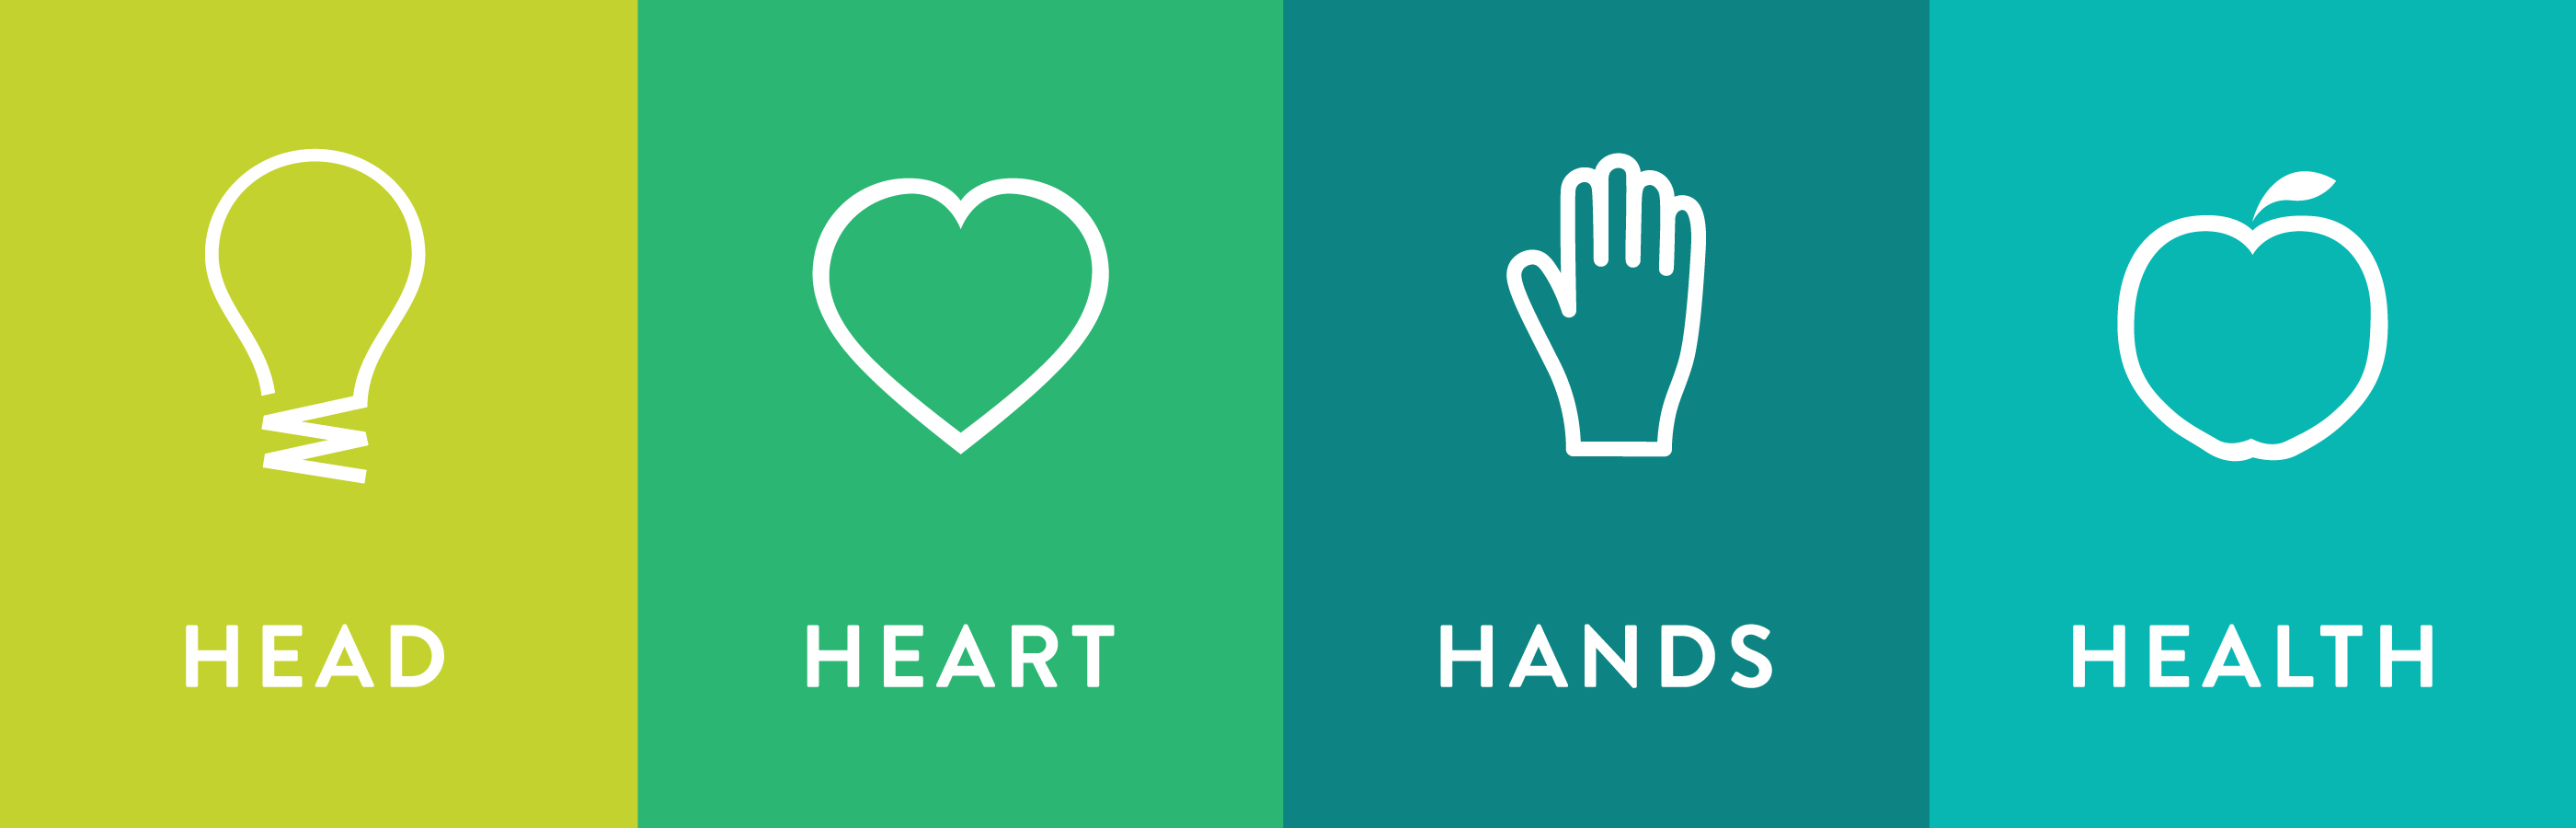 4-H icons, Head, Heart, Hands, Health